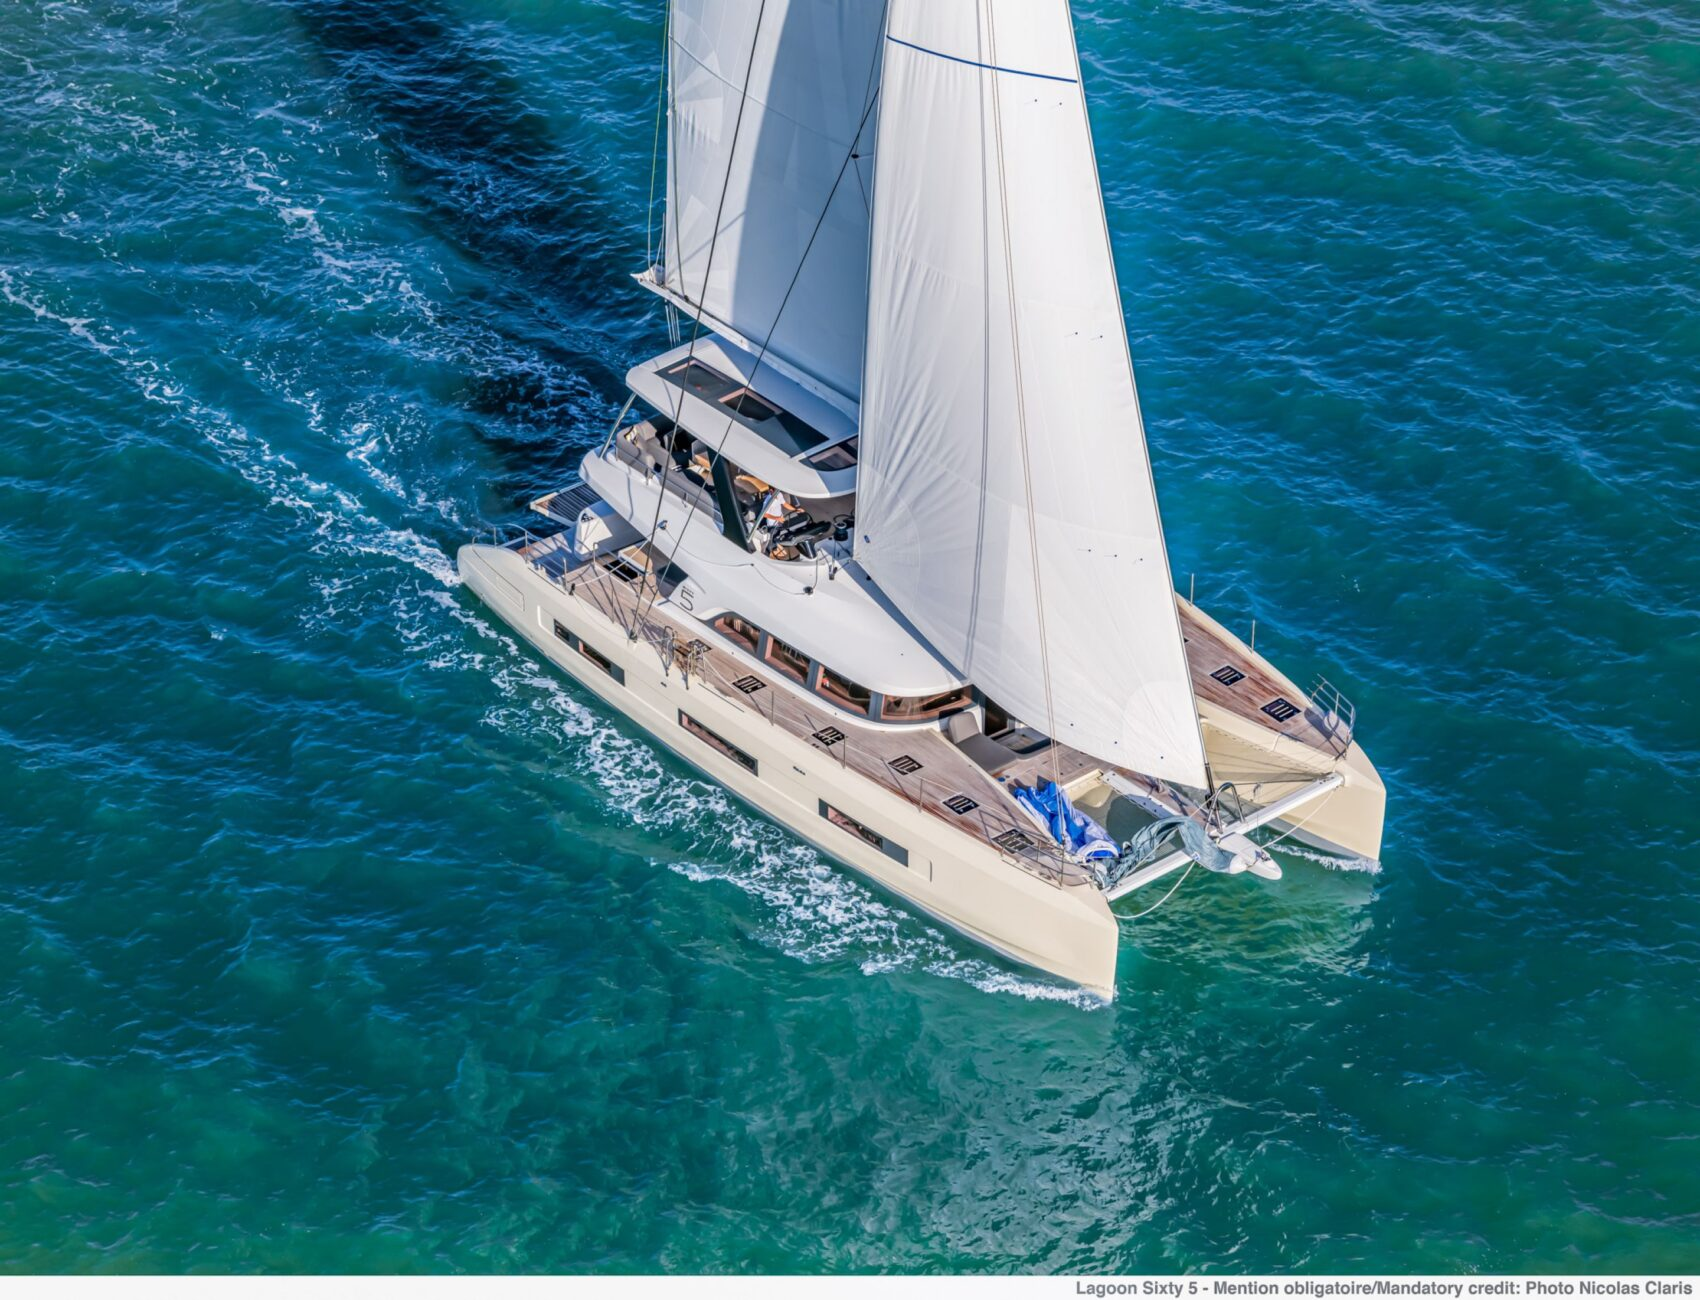 LAGOON SIXTY 5: MULTIHULL OF THE YEAR 2021 NOMINATION